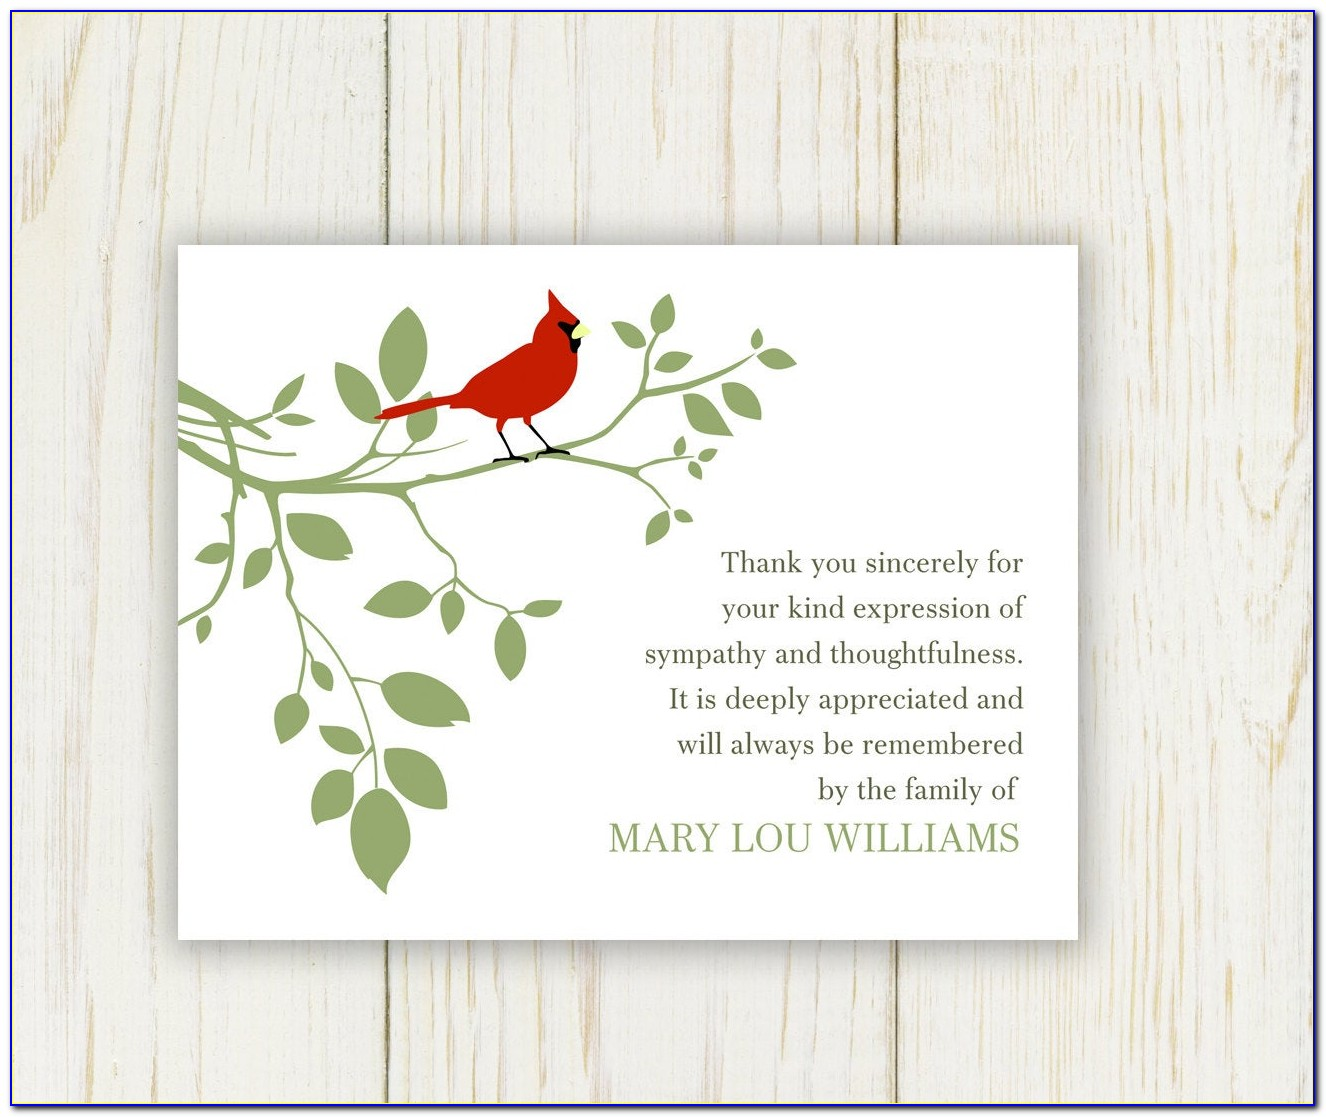 Printable Prayer Cards For Funerals